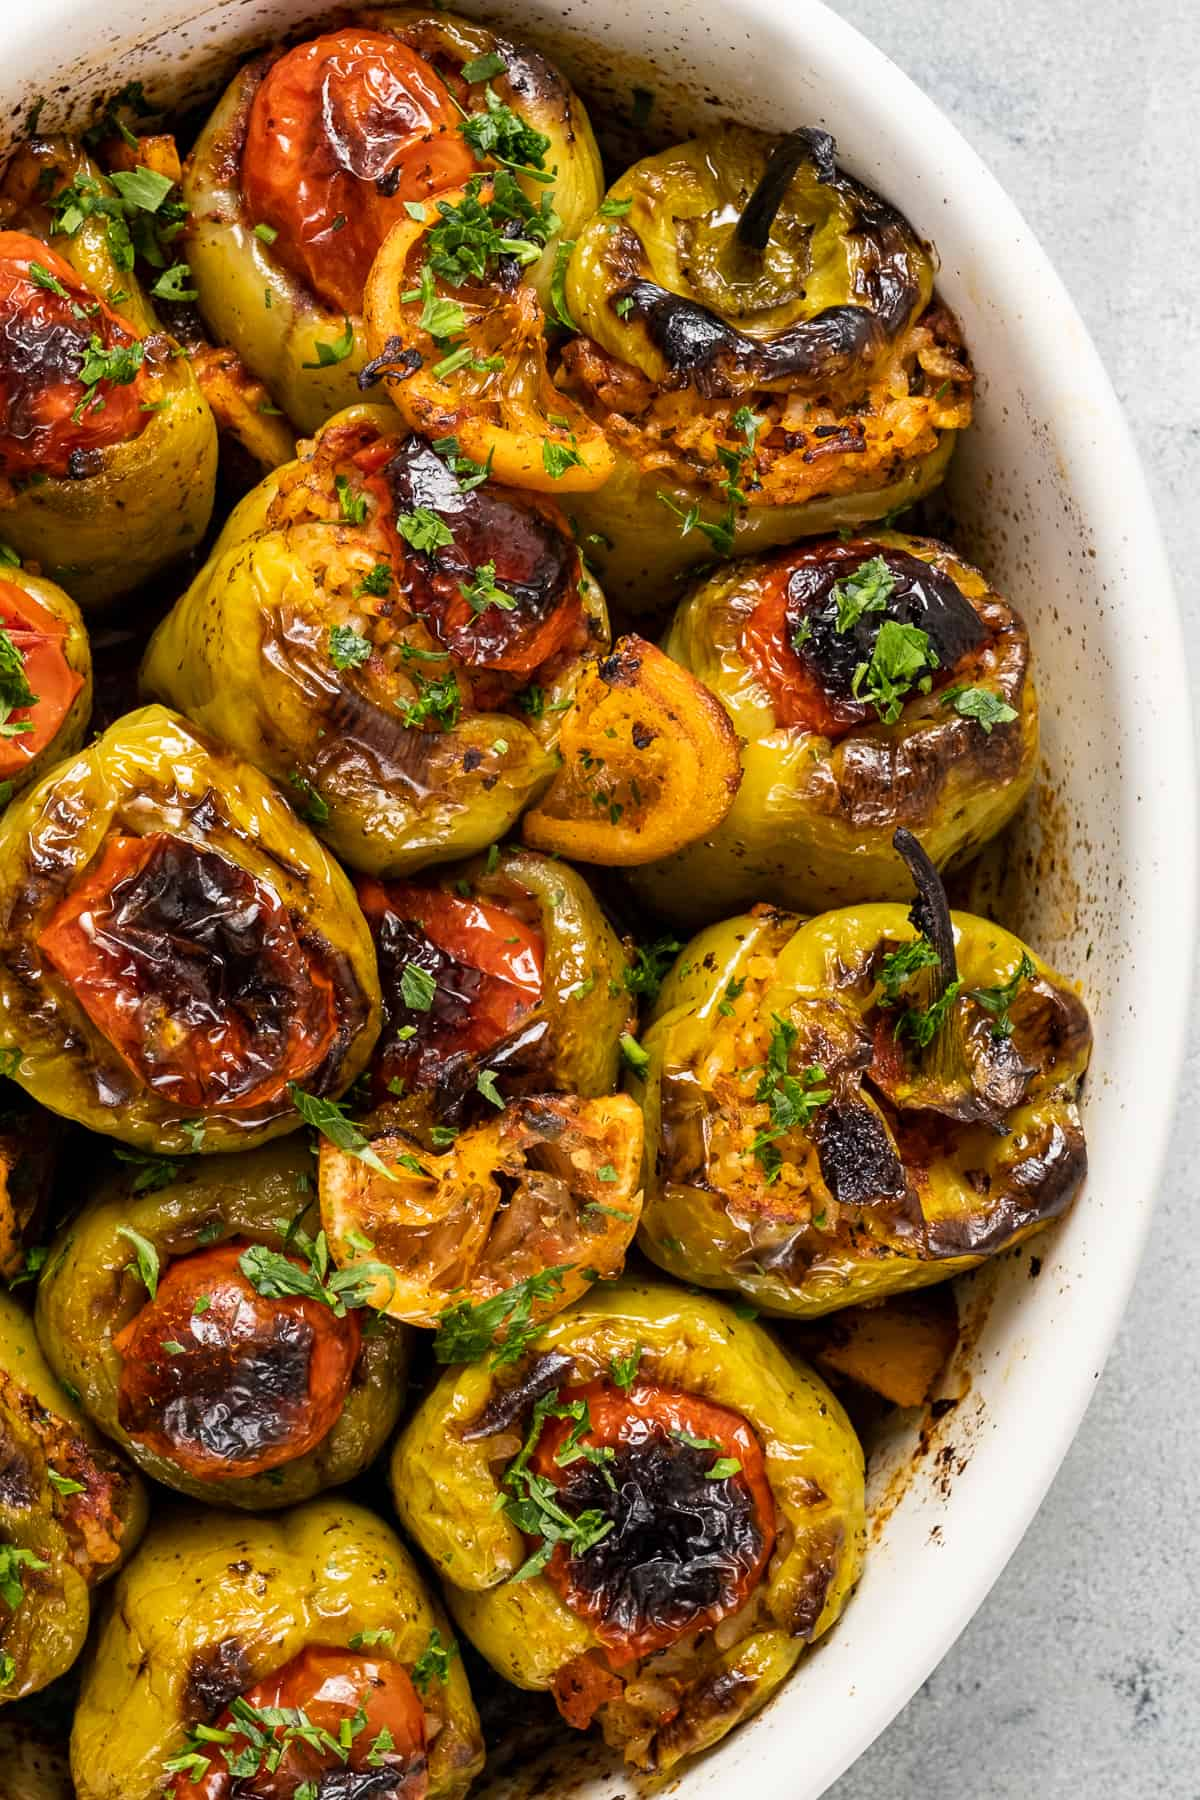 Rice stuffed green peppers topped with tomatoes, lemon slices and chopped parsley in a baking pan.